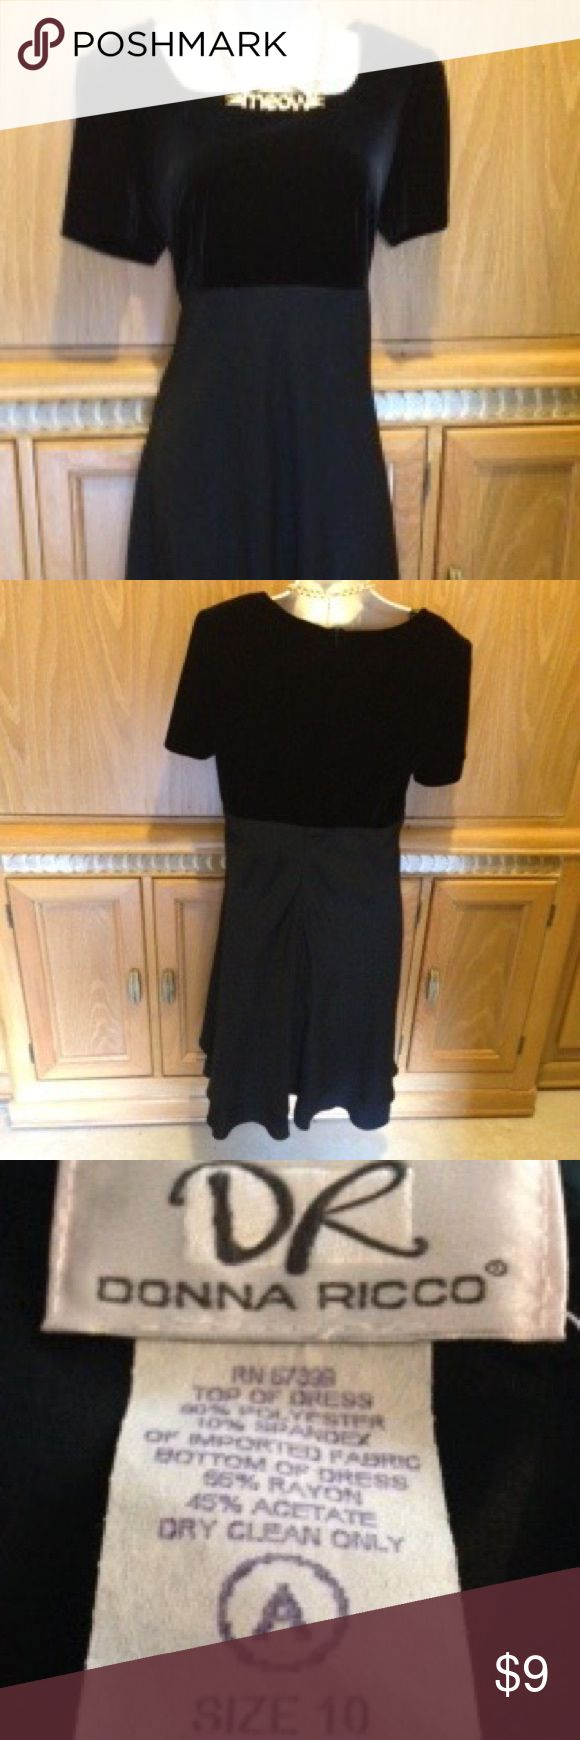 Black dress by Donna Ricco Beautiful black imported fabricated dress. Used. In near new condition. SZ 10. Donna Ricco Dresses Prom